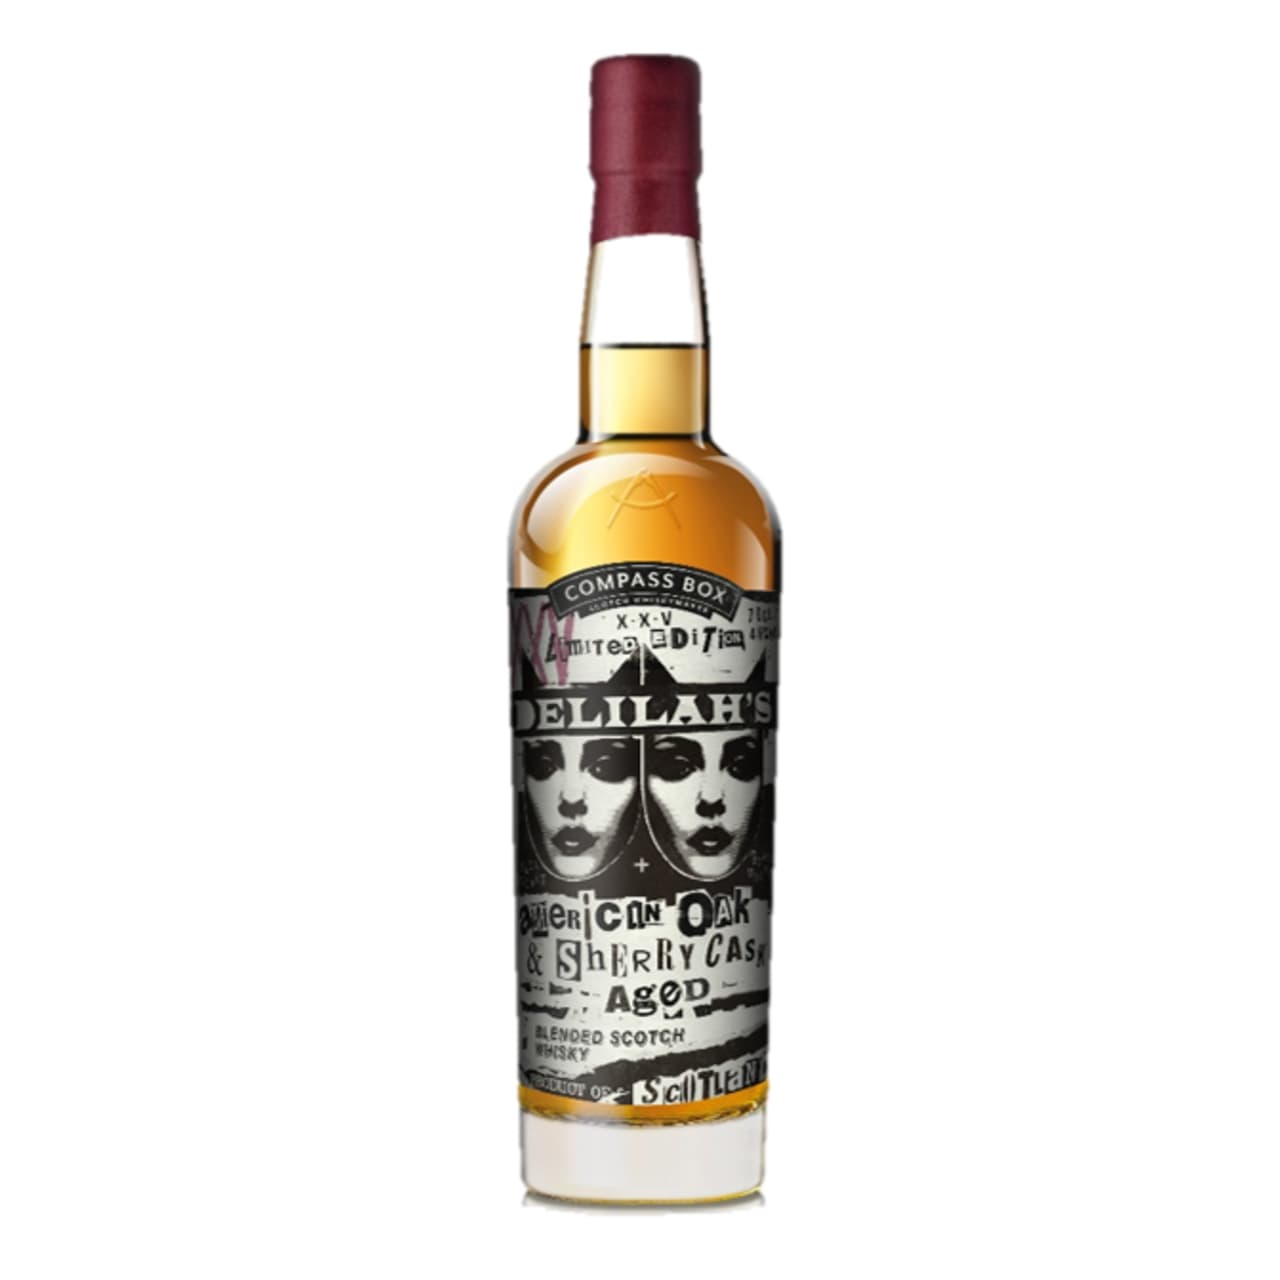 Product Image - Compass Box Delila's XXV Blended Scotch